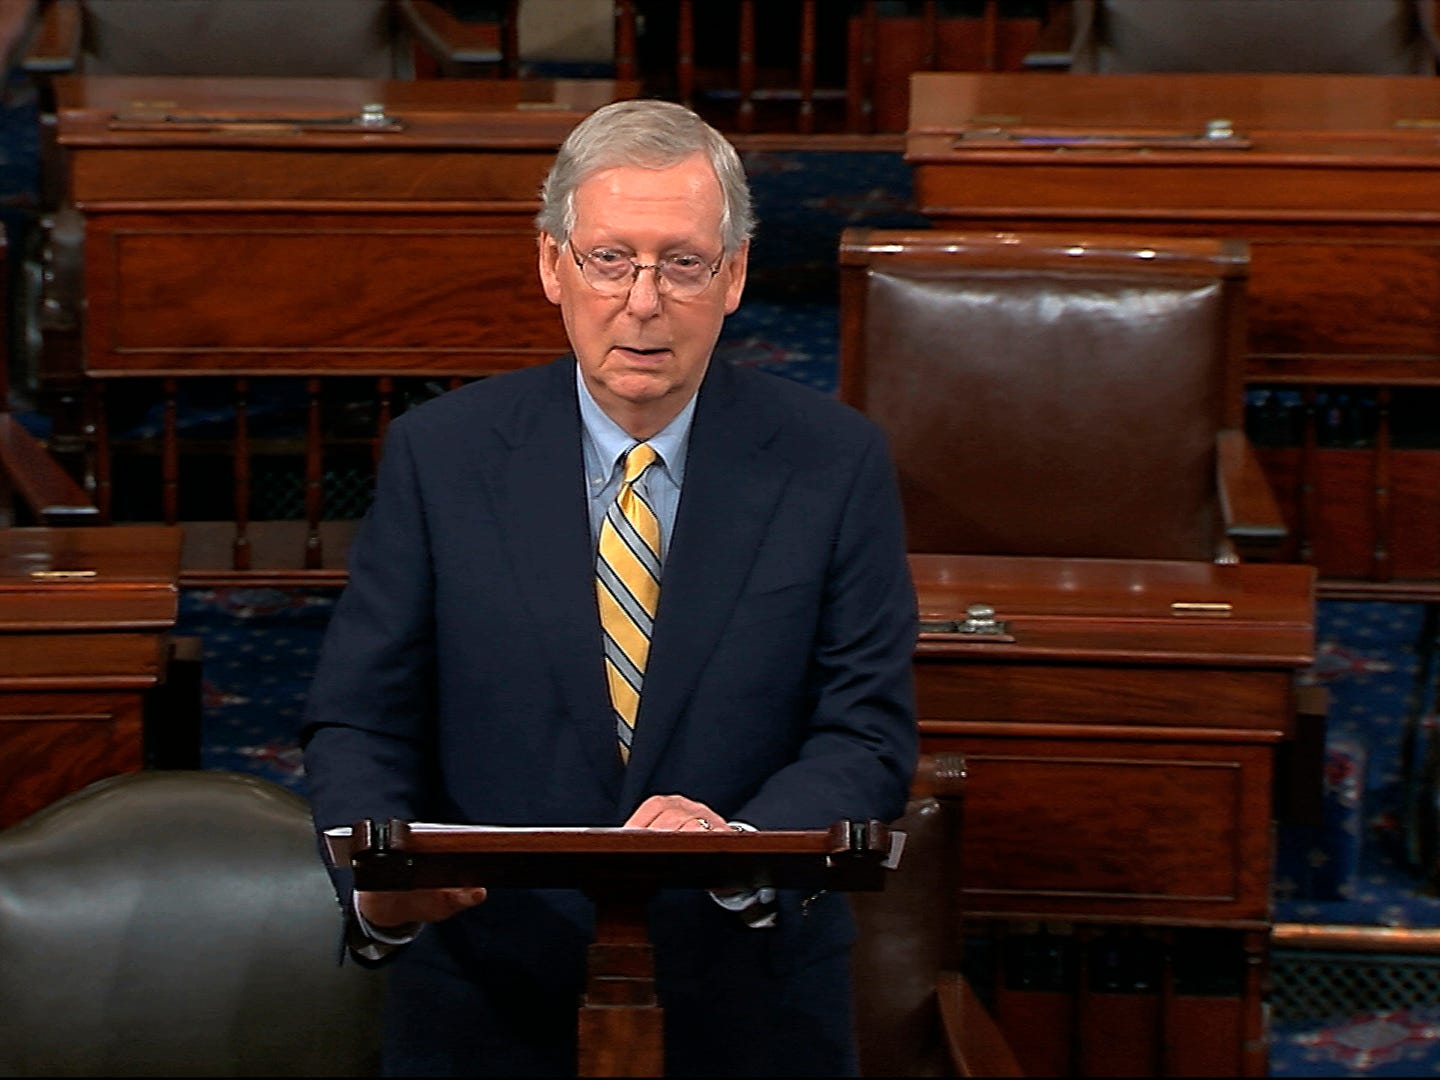 Senate Majority Leader Mitch McConnell speaks about Sen. John McCain on the floor of the U.S. Senate, Aug. 27, 2018, on Capitol Hill in Washington.